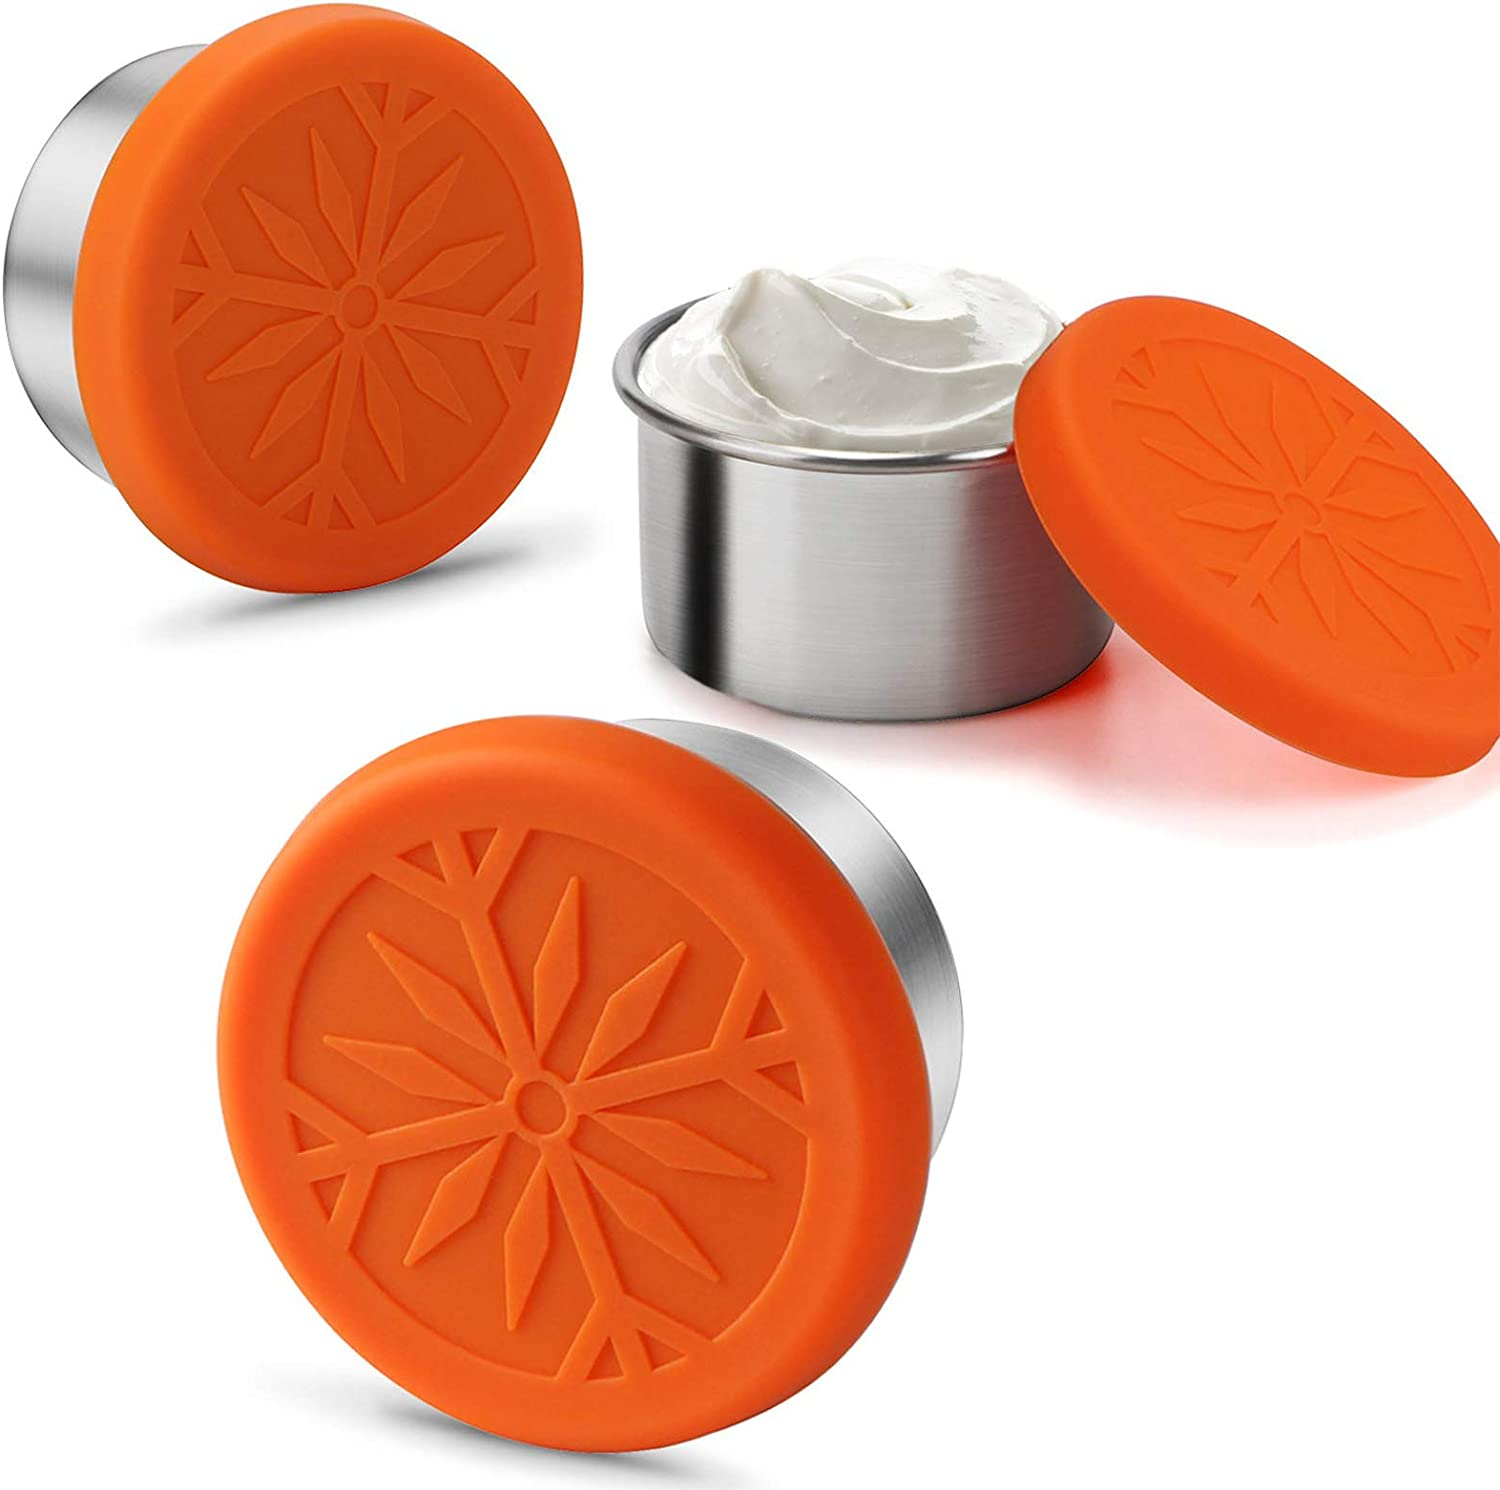 FANGSUN Dressing Containers to Go for Condiments, Salad Dressing, Dips, Snacks, Stainless Steel Dipping Sauce Cups, Fits in Bento Box for Lunch, Mini Food Storage Containers with Lid (Orange)